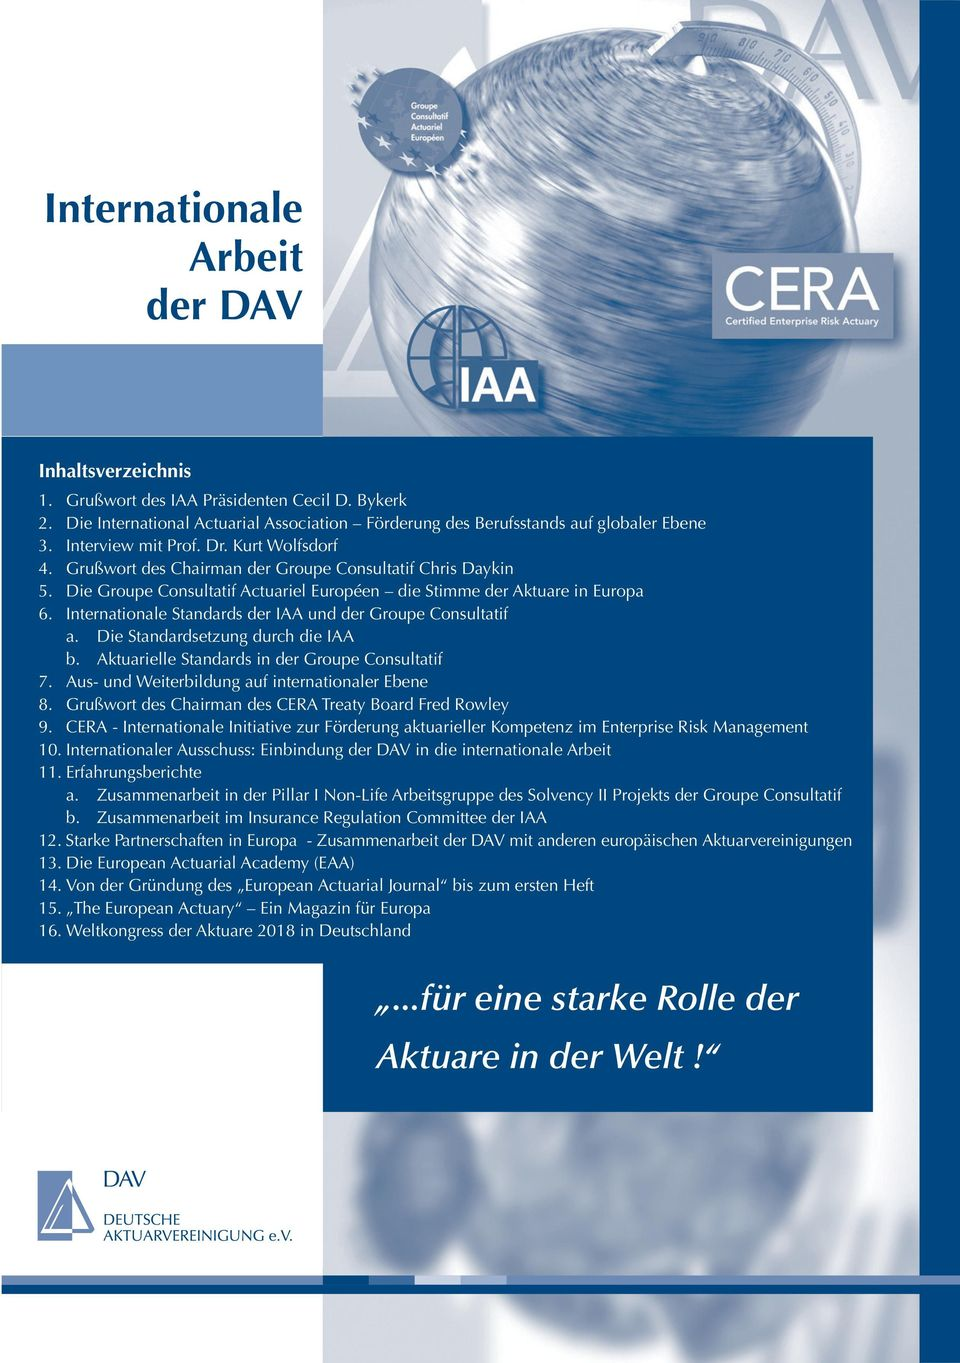 Internationale Standards der IAA und der Groupe Consultatif a. Die Standardsetzung durch die IAA b. Aktuarielle Standards in der Groupe Consultatif 7.